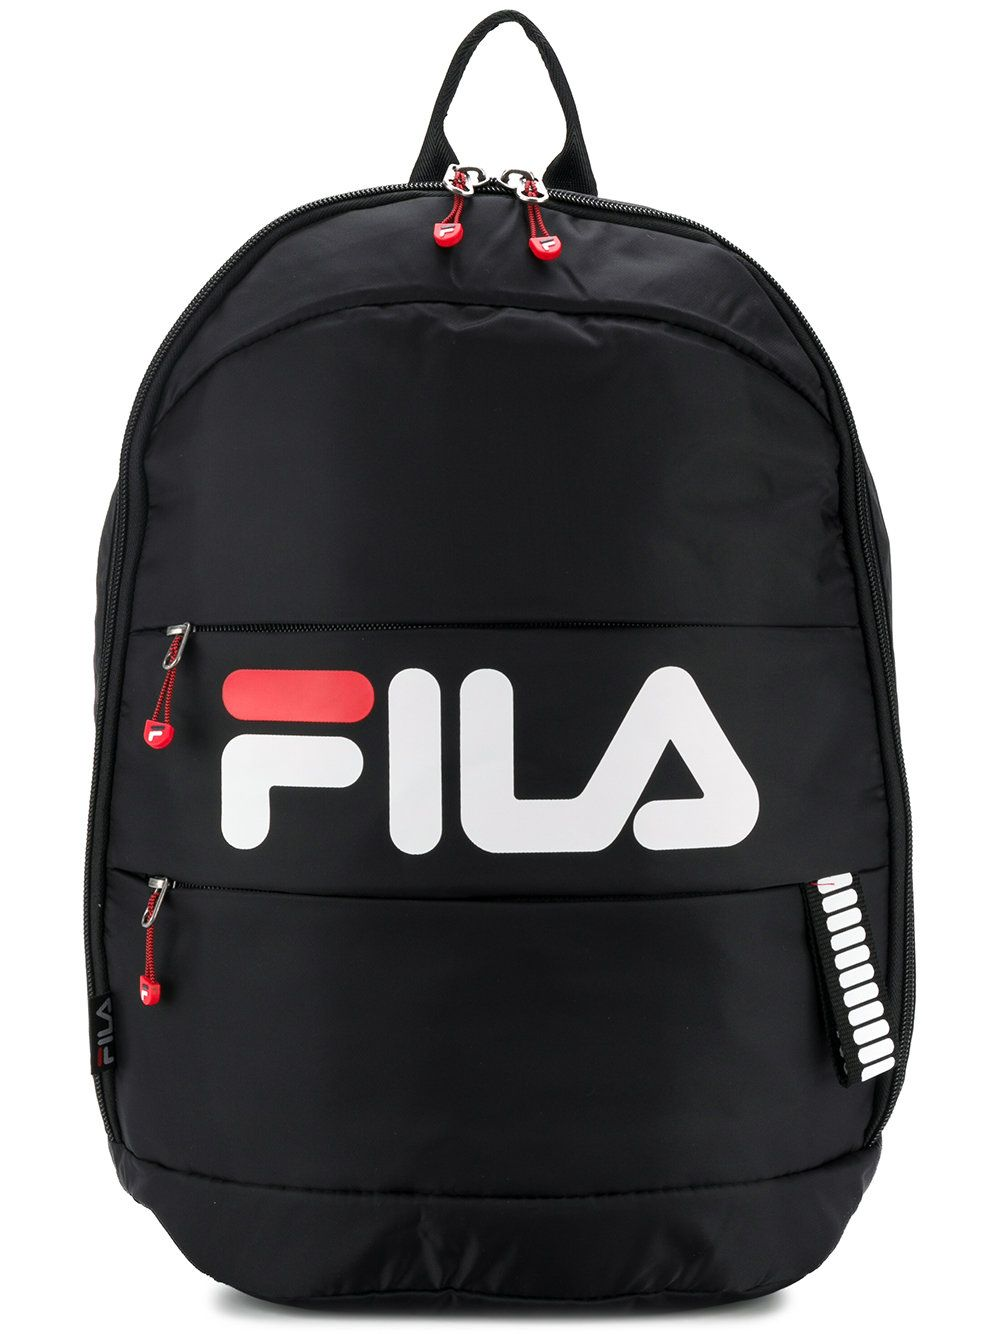 66e7c17597  fila  bags  backpacks   Fila Outfit